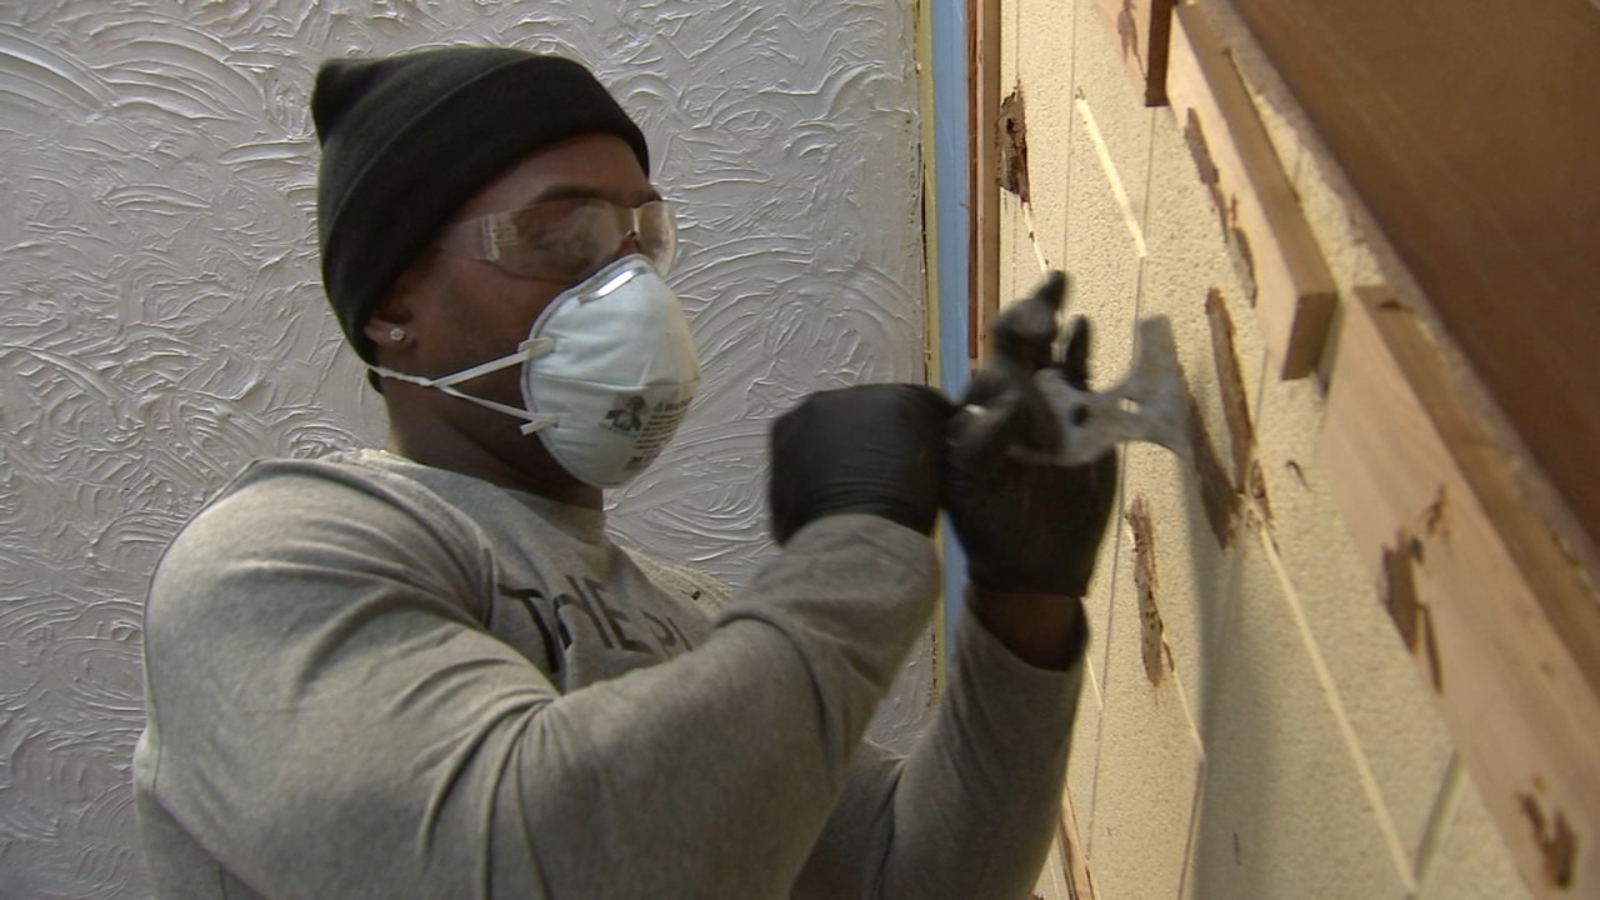 Plan B Foundation helps formerly incarcerated residents find construction jobs in Chicago